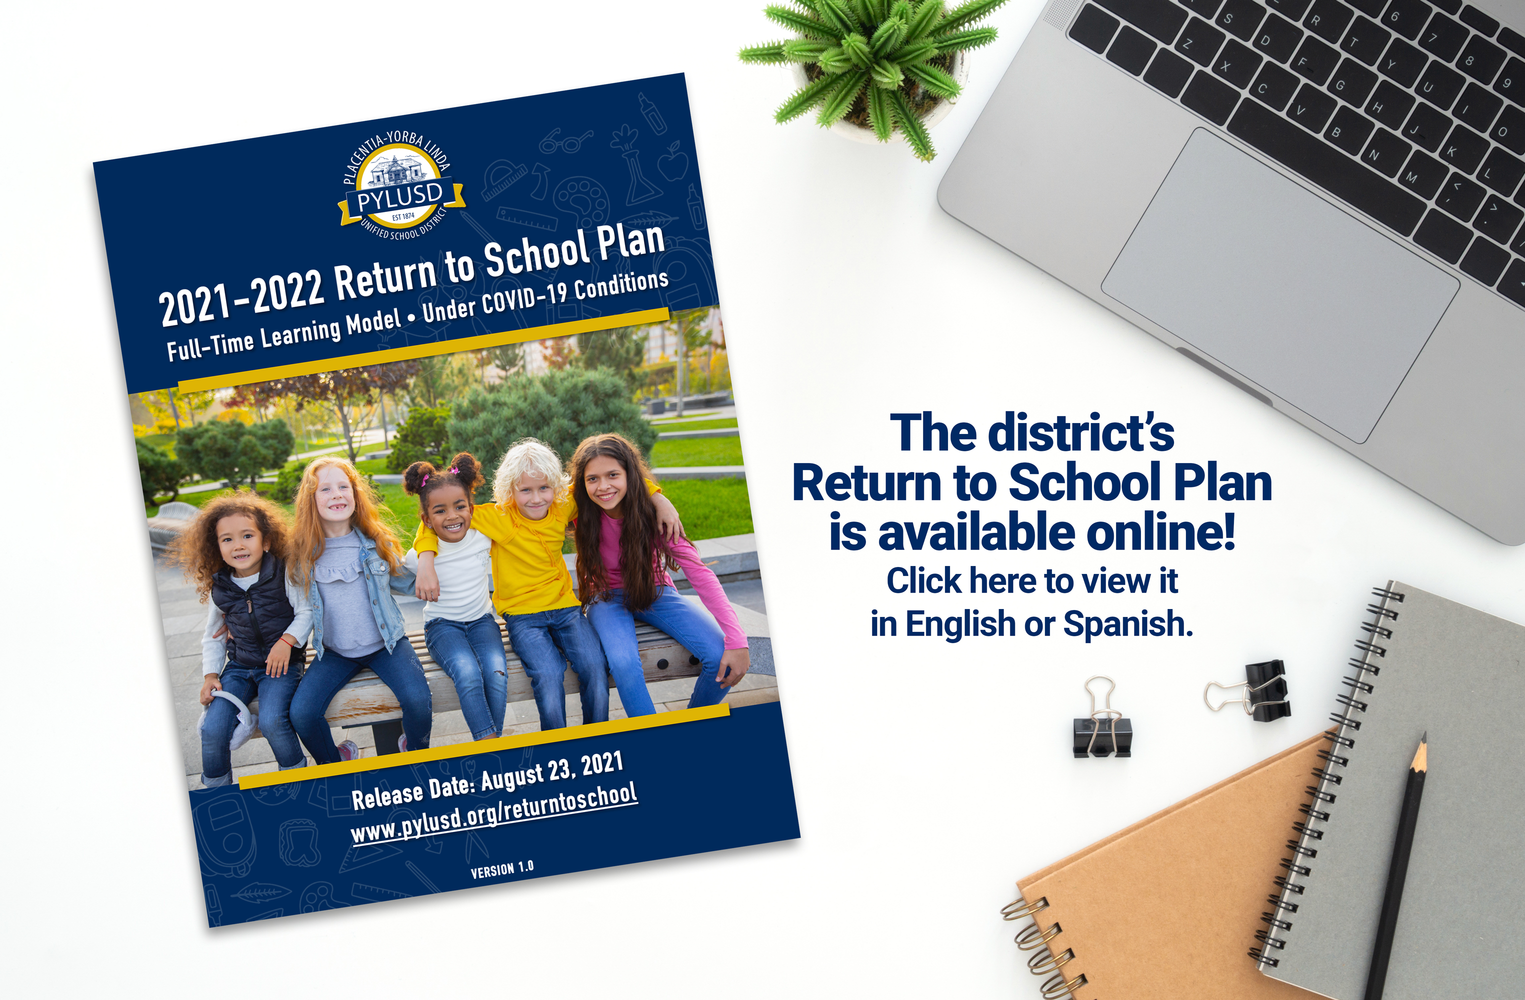 Return to School Plan is available online.